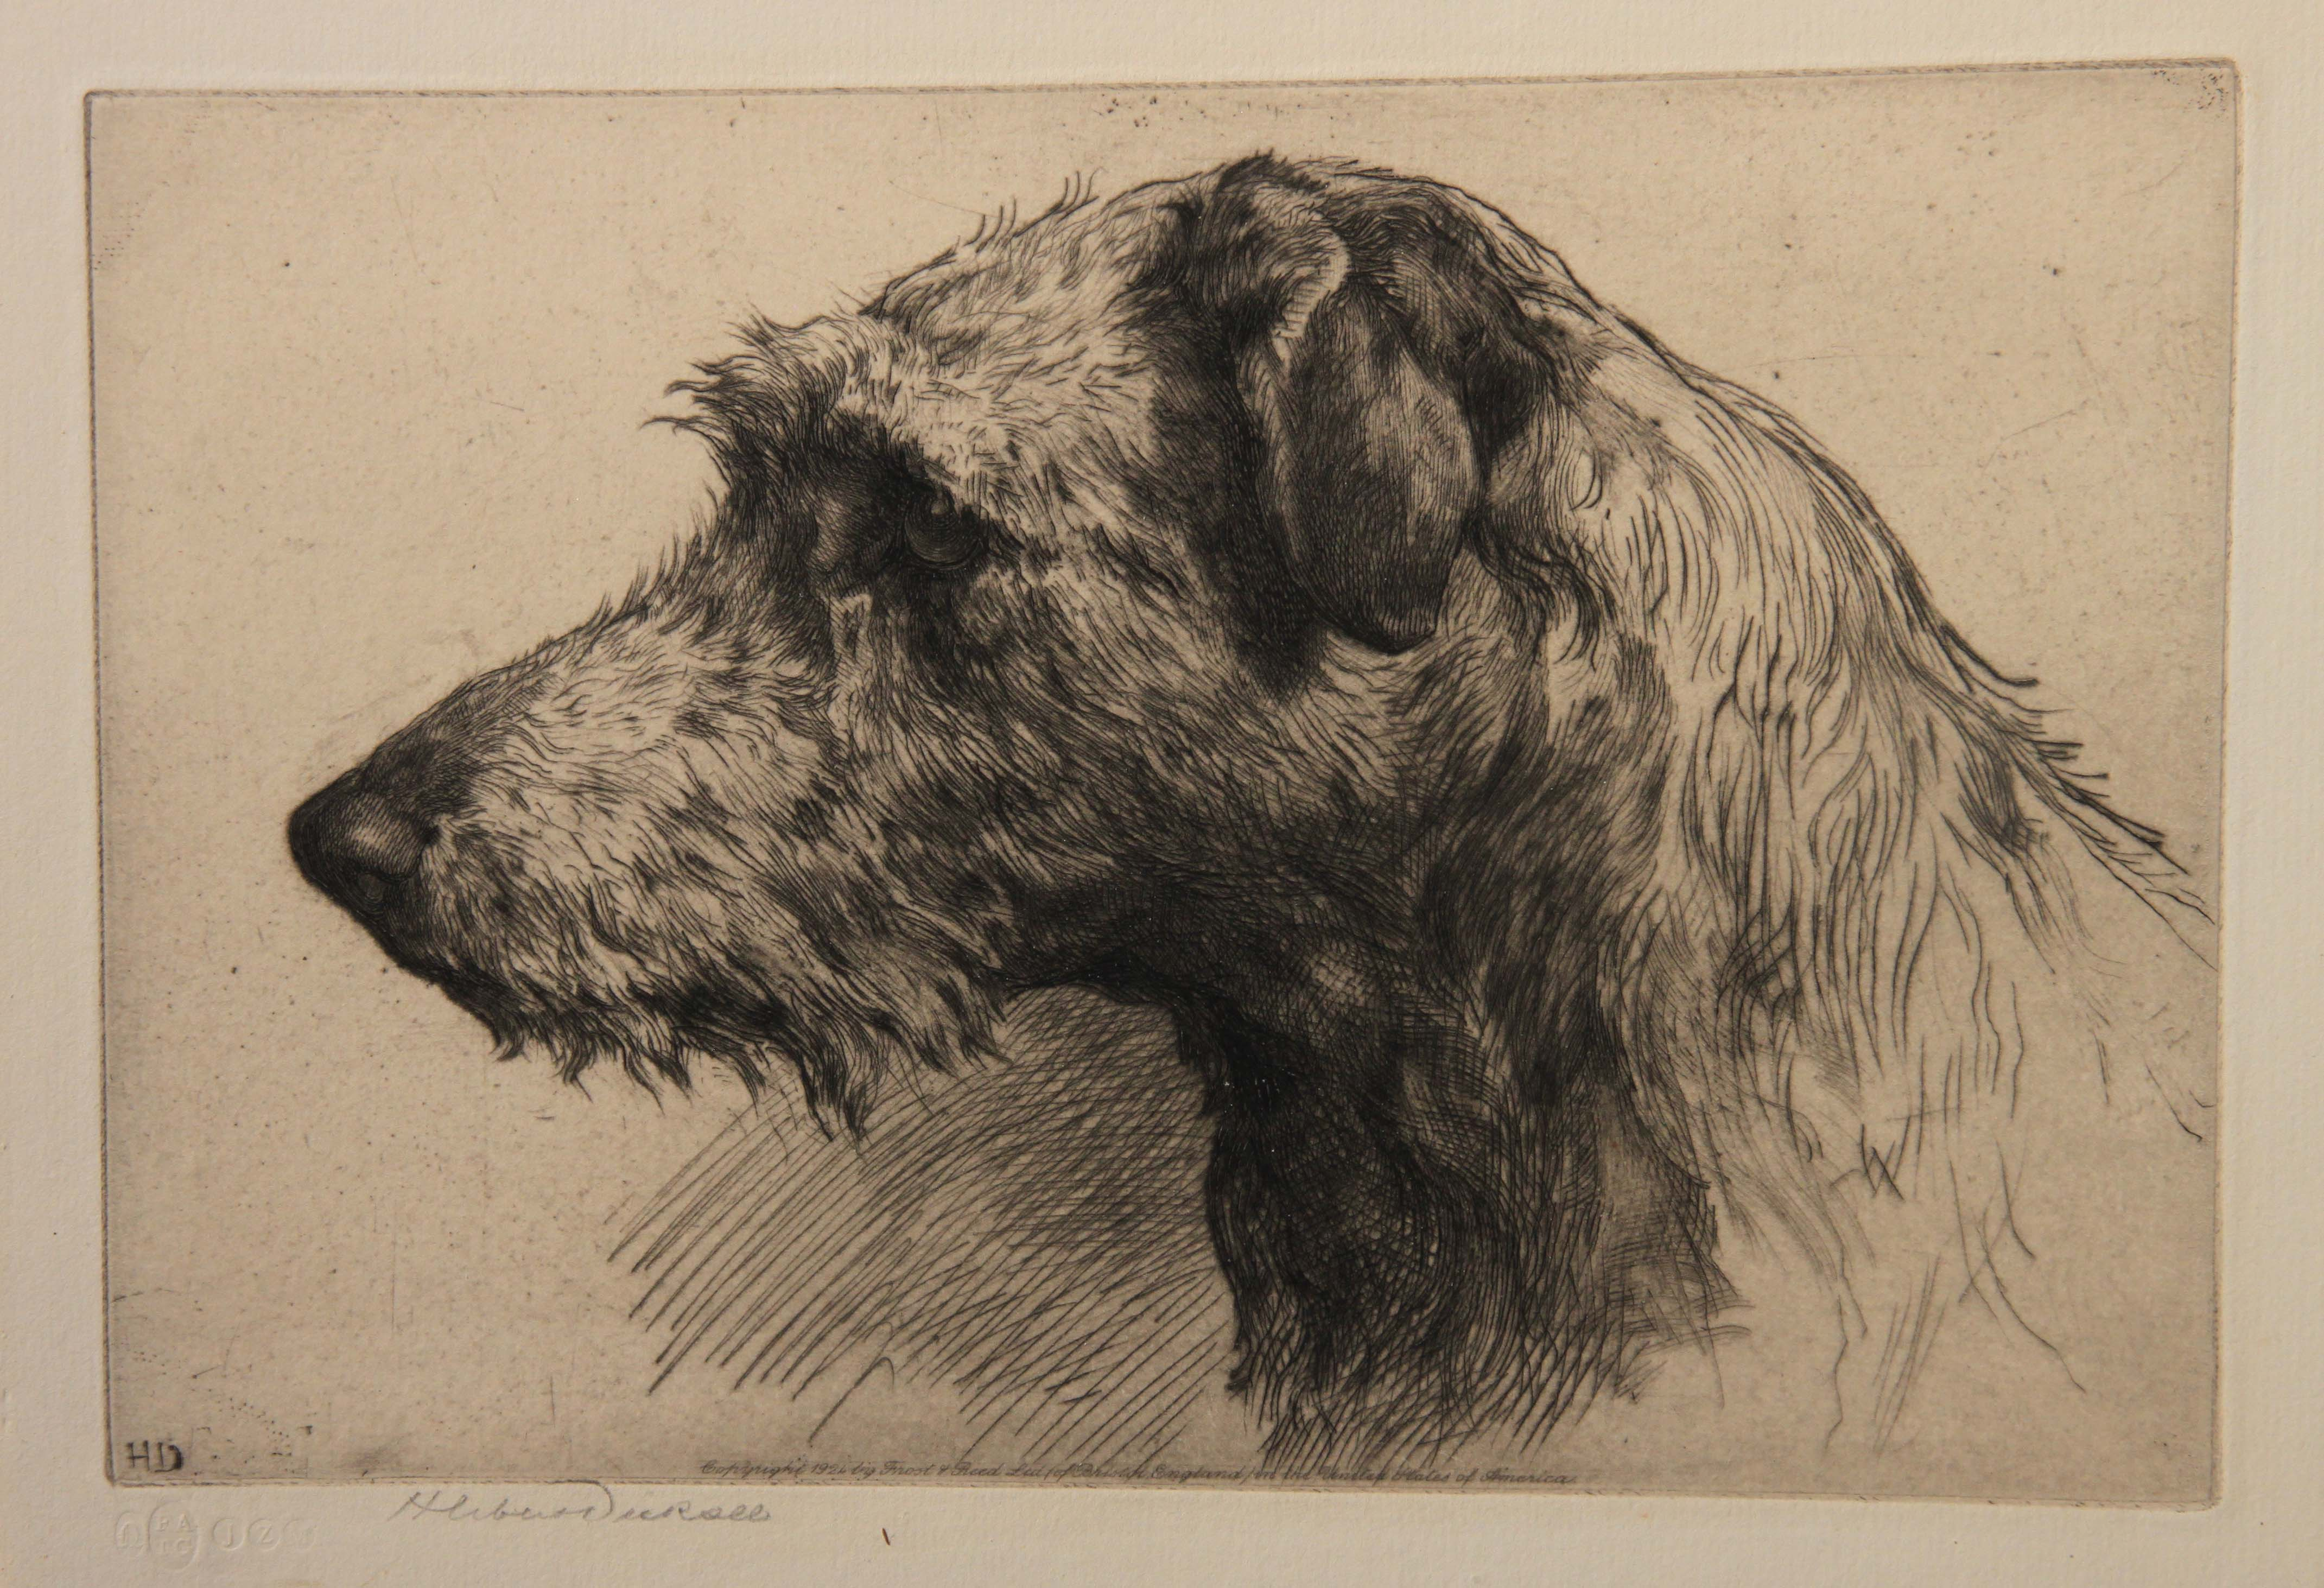 Click for larger image: Scottish Deerhound etching by Herbert Thomas Dicksee signature - Scottish Deerhound etching by Herbert Thomas Dicksee signature